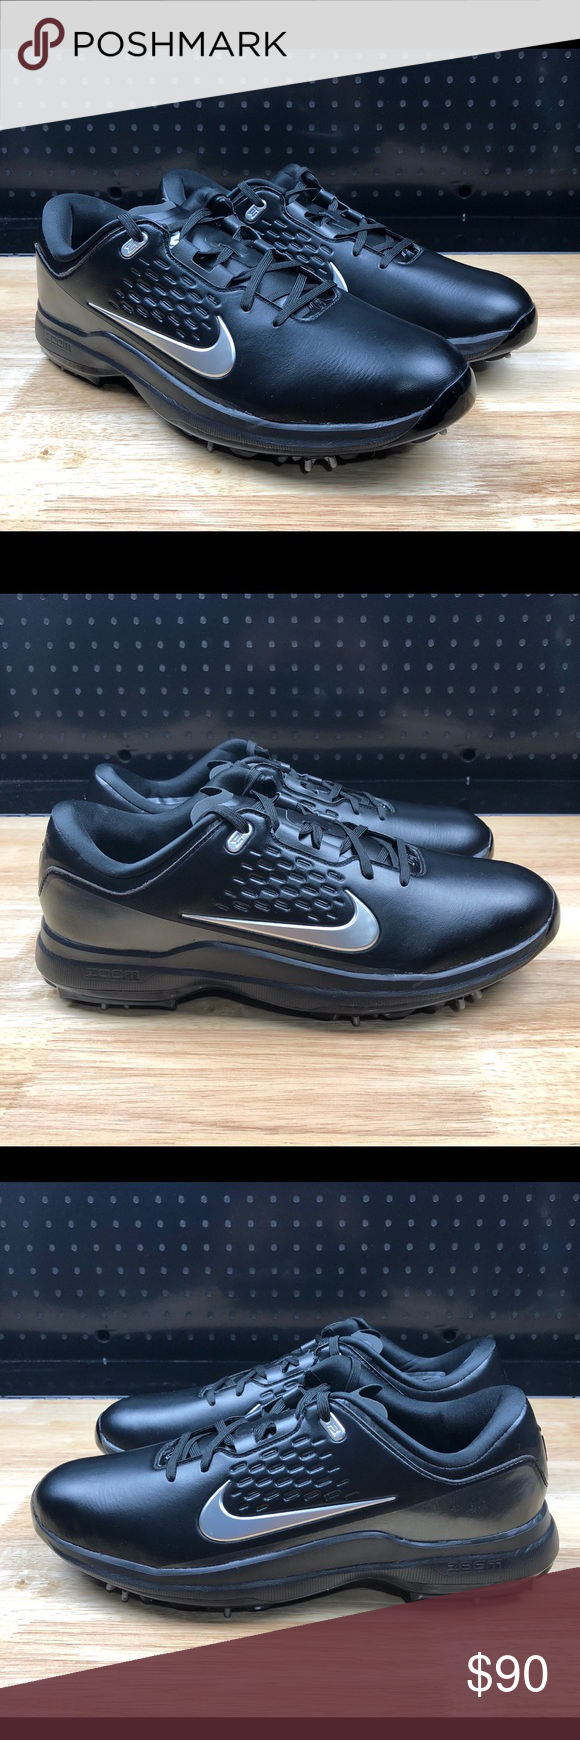 b56b710cf242 Nike Air Zoom TW71 Tiger Woods Golf Shoes Black Nike Air Zoom TW71 Tiger  Woods Golf Shoes Black Silver AA1990-002 Men s 9.5 New Without Box FAST  SHIPPING ...